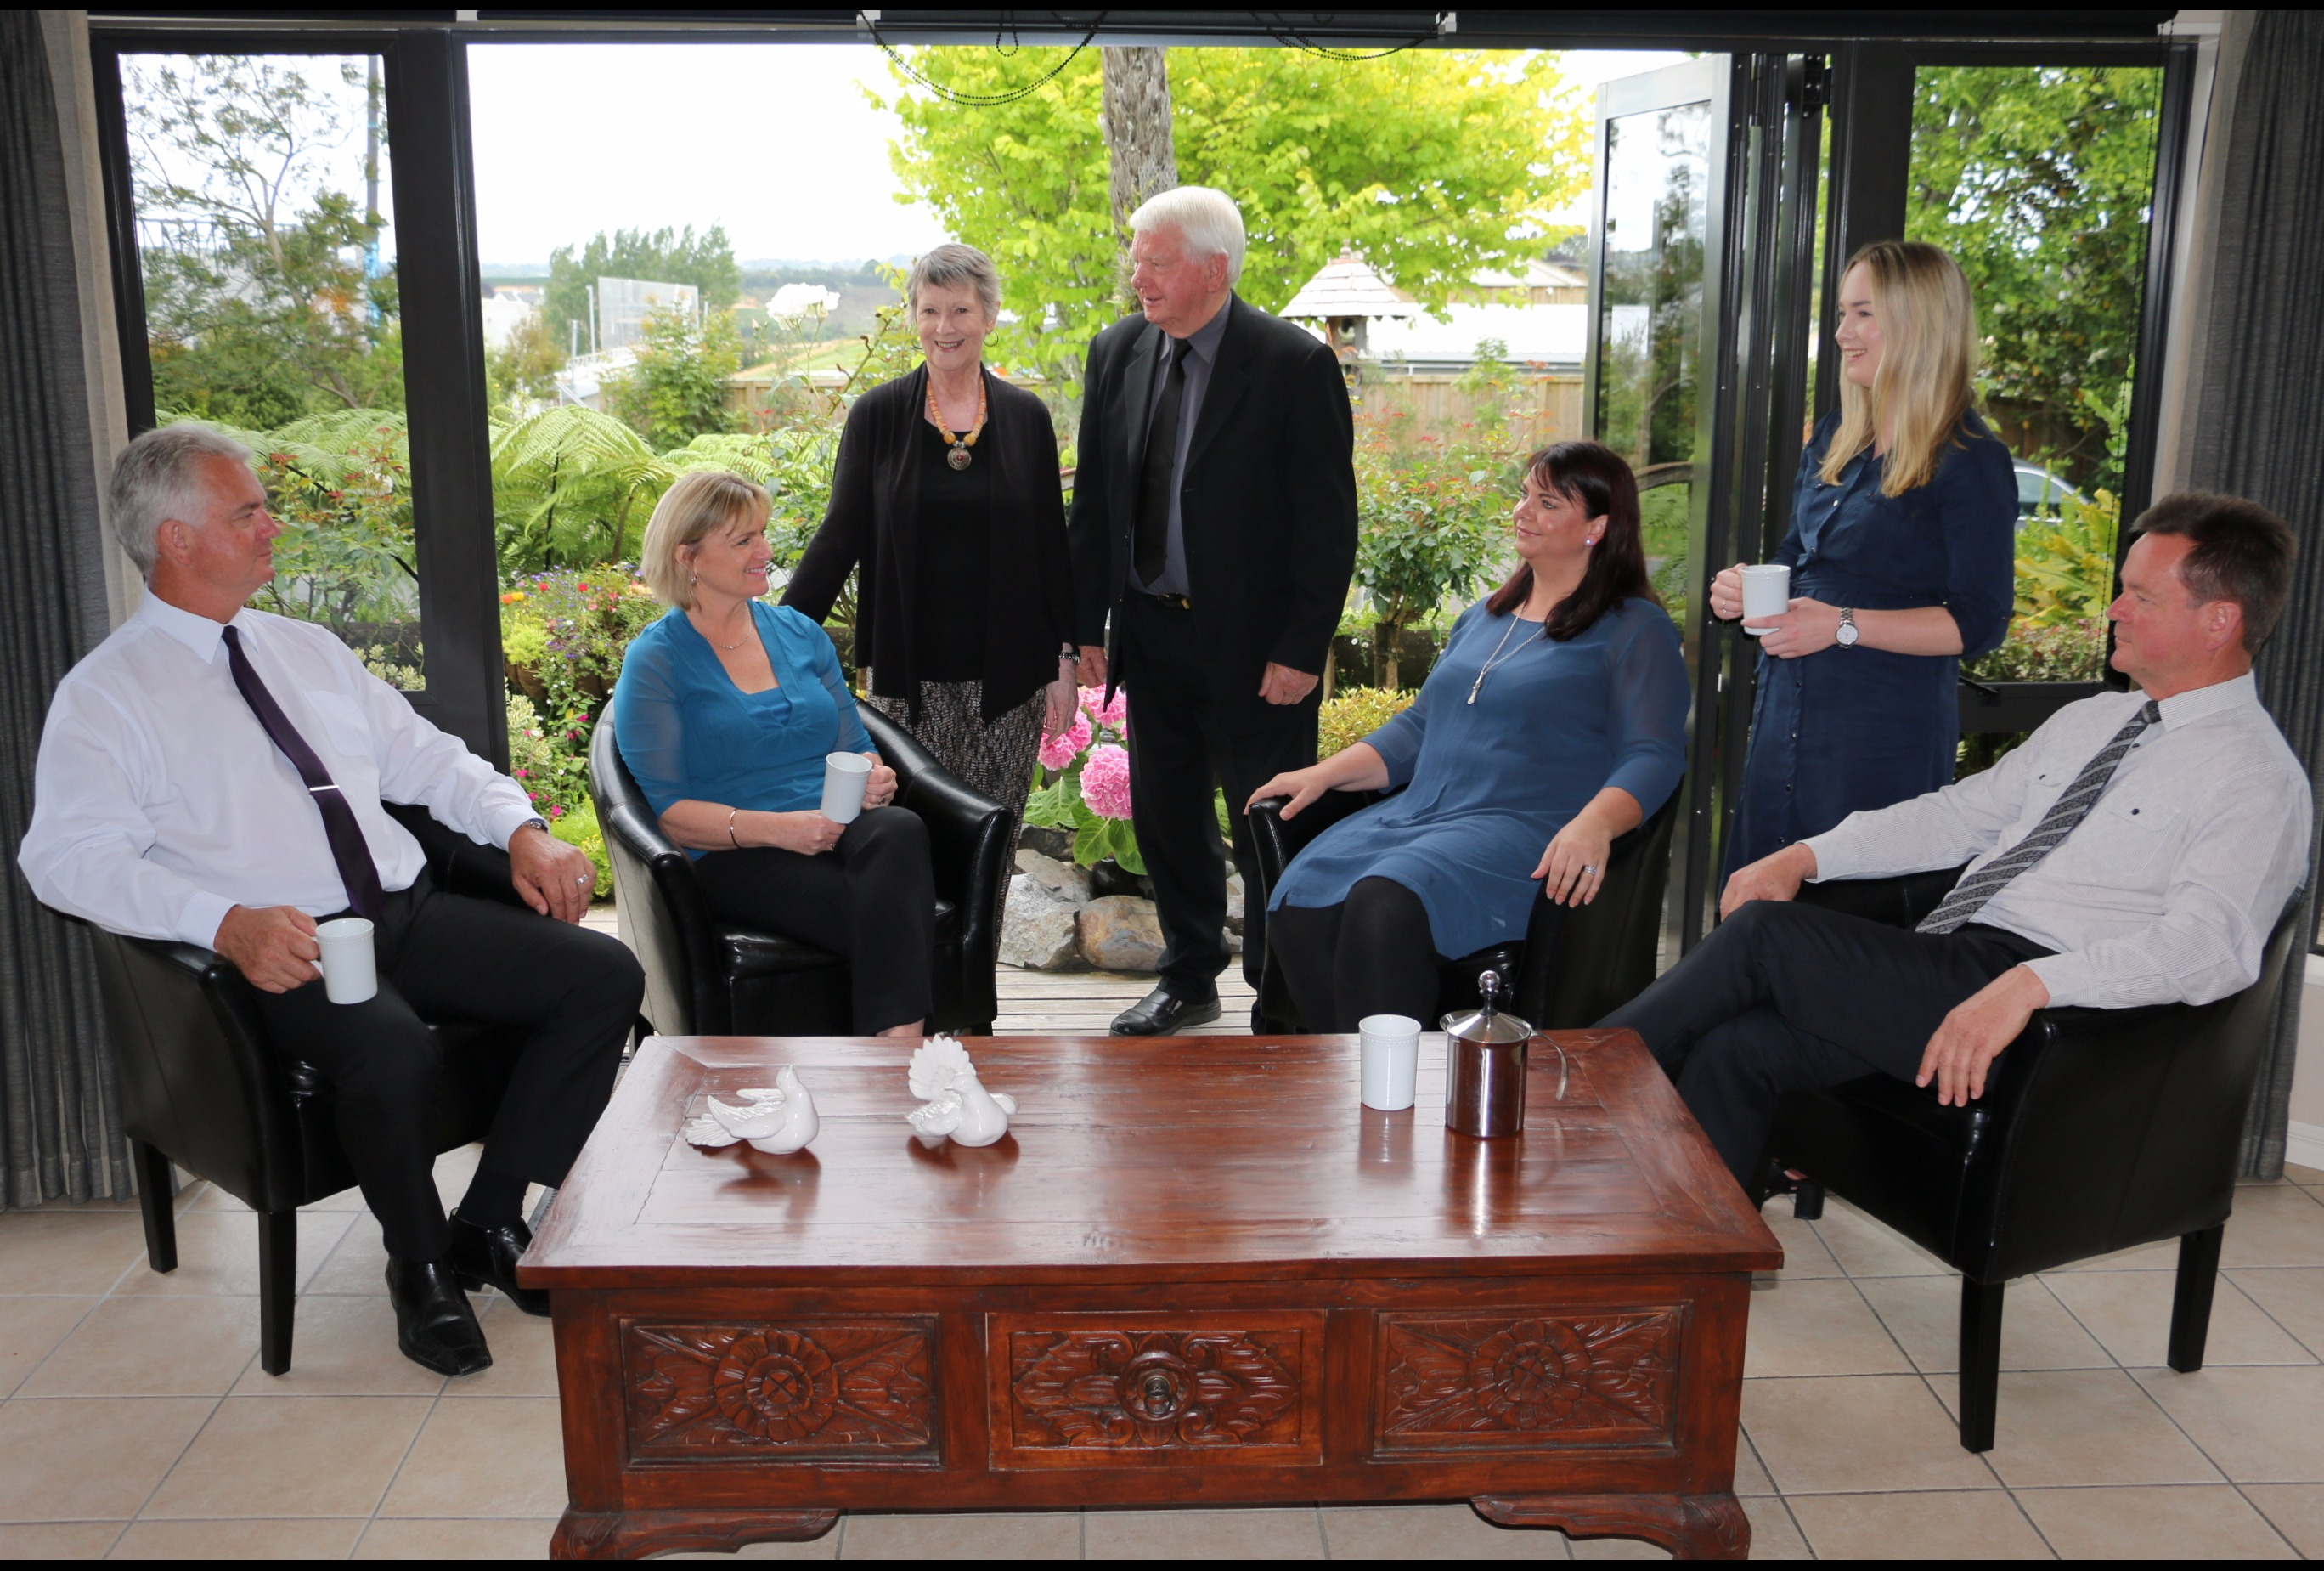 Hope family funeral services funeral directors tauranga area hope family funeral services funeral directors tauranga area yellow nz solutioingenieria Images